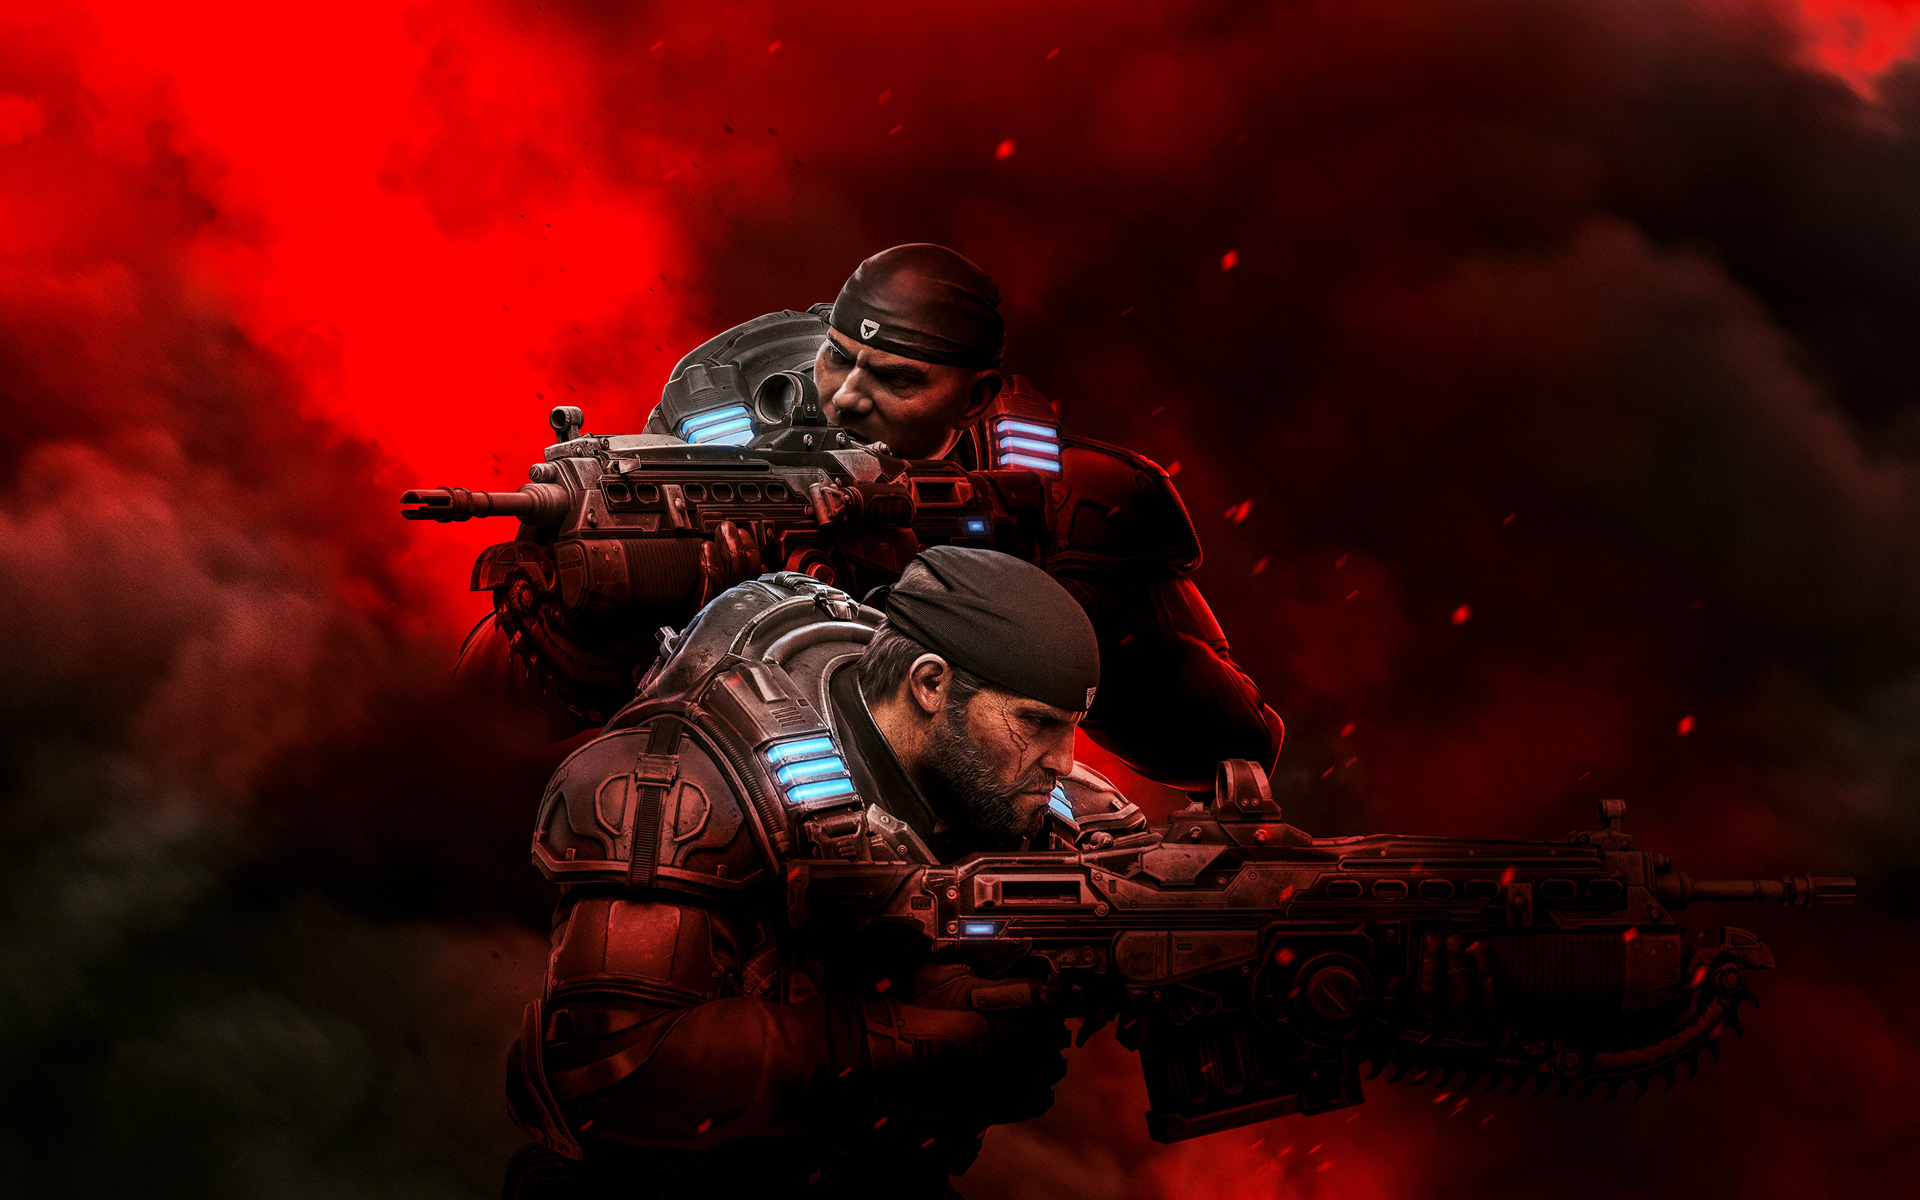 Gears 5 Wallpaper in 1920x1200